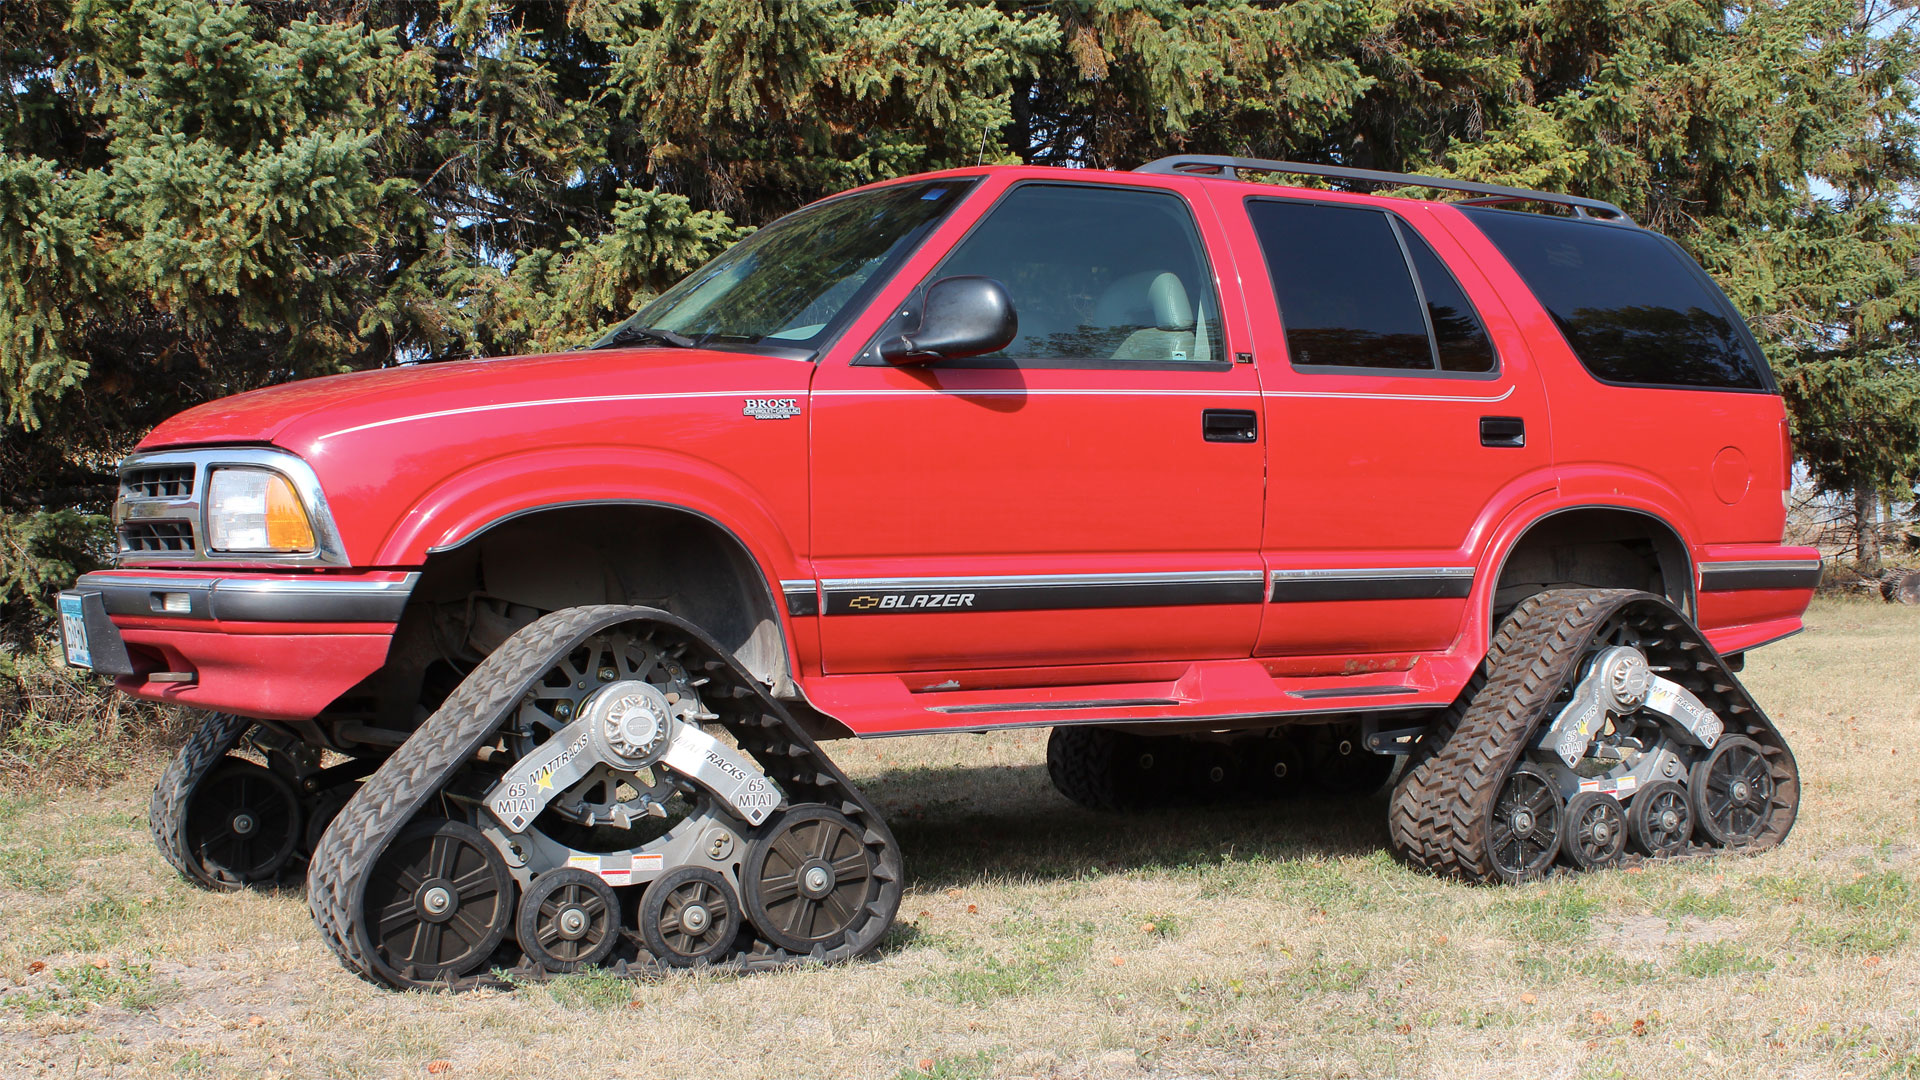 65 Series Tracks on a Chevy Blazer